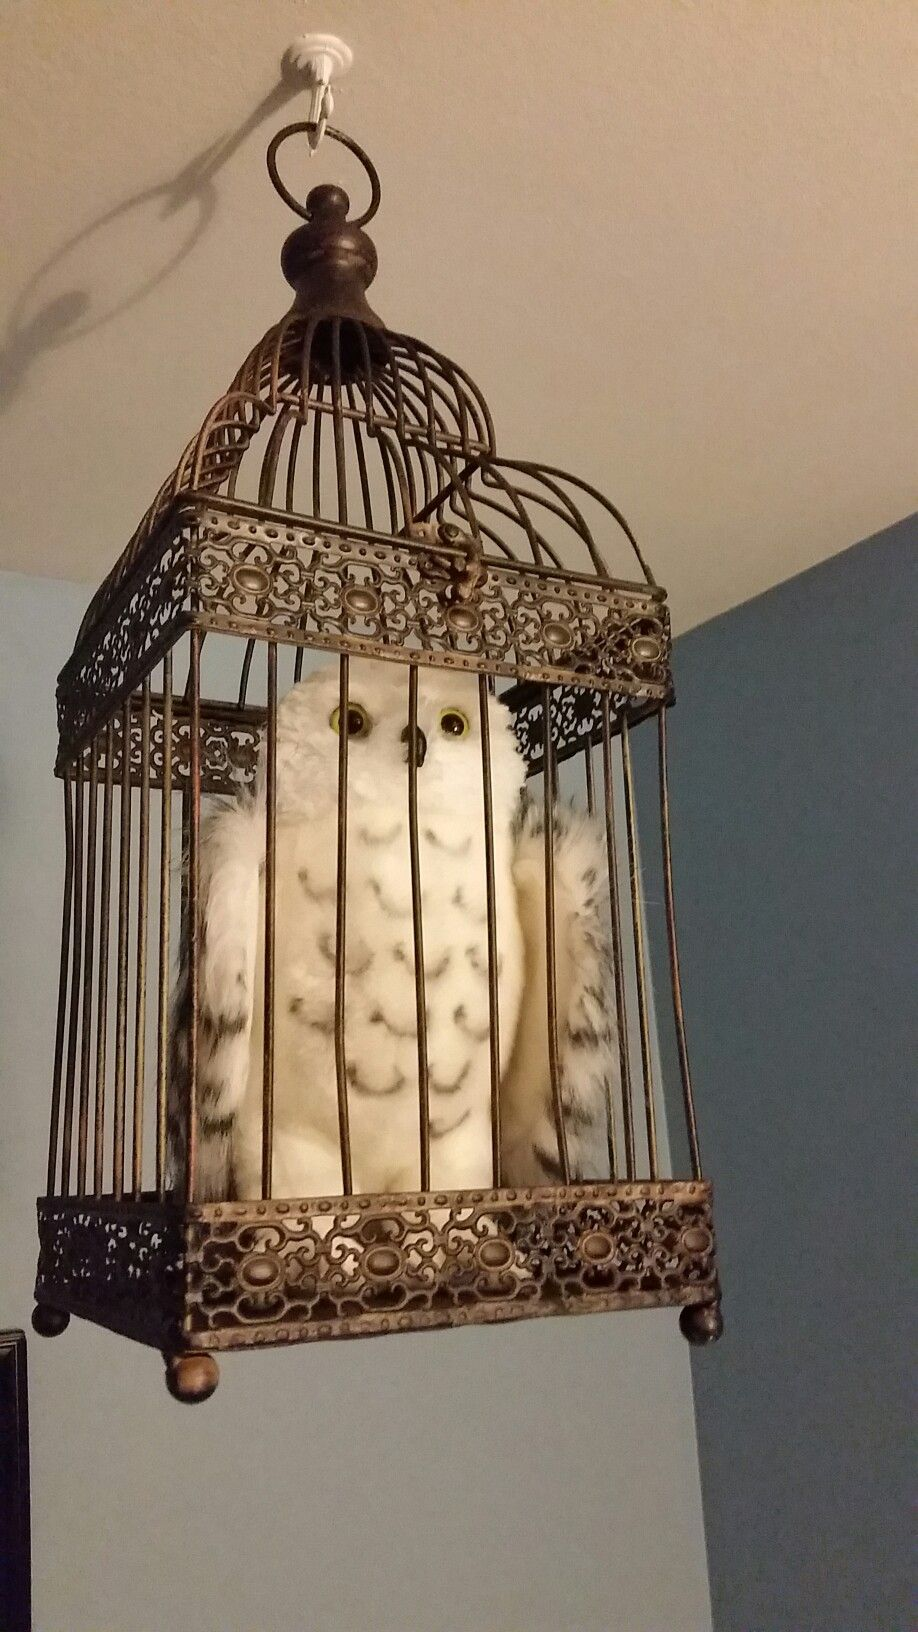 hedwig in owl cage for harry potter nursery harry potter nursery pinterest hedwig harry. Black Bedroom Furniture Sets. Home Design Ideas